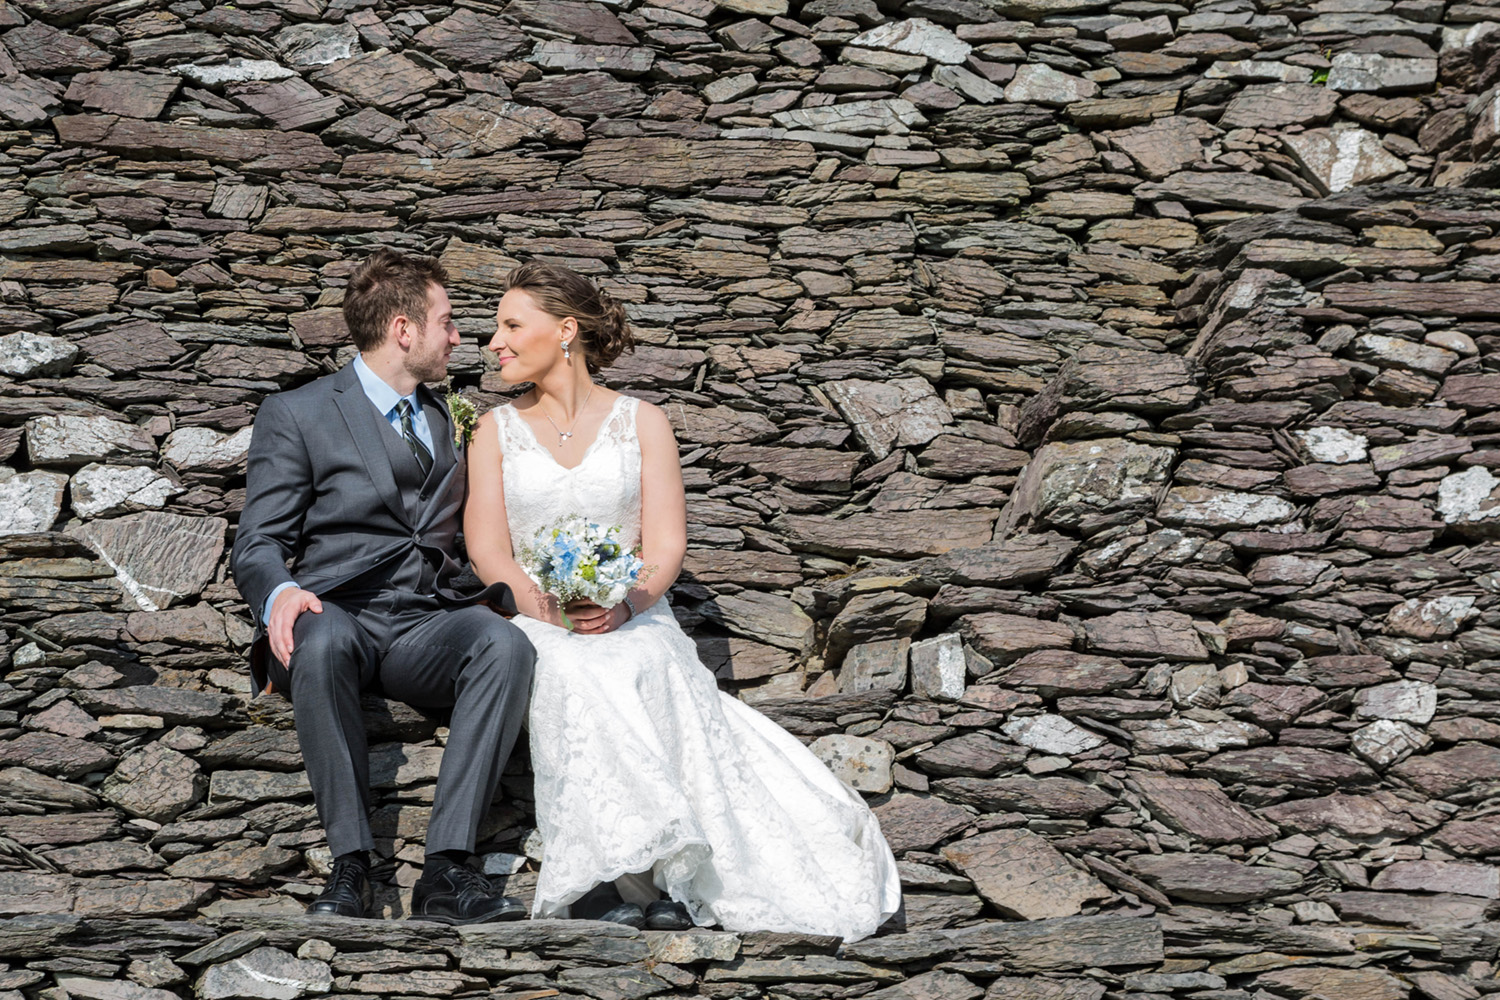 Elope to Ireland Ballycarbery castle